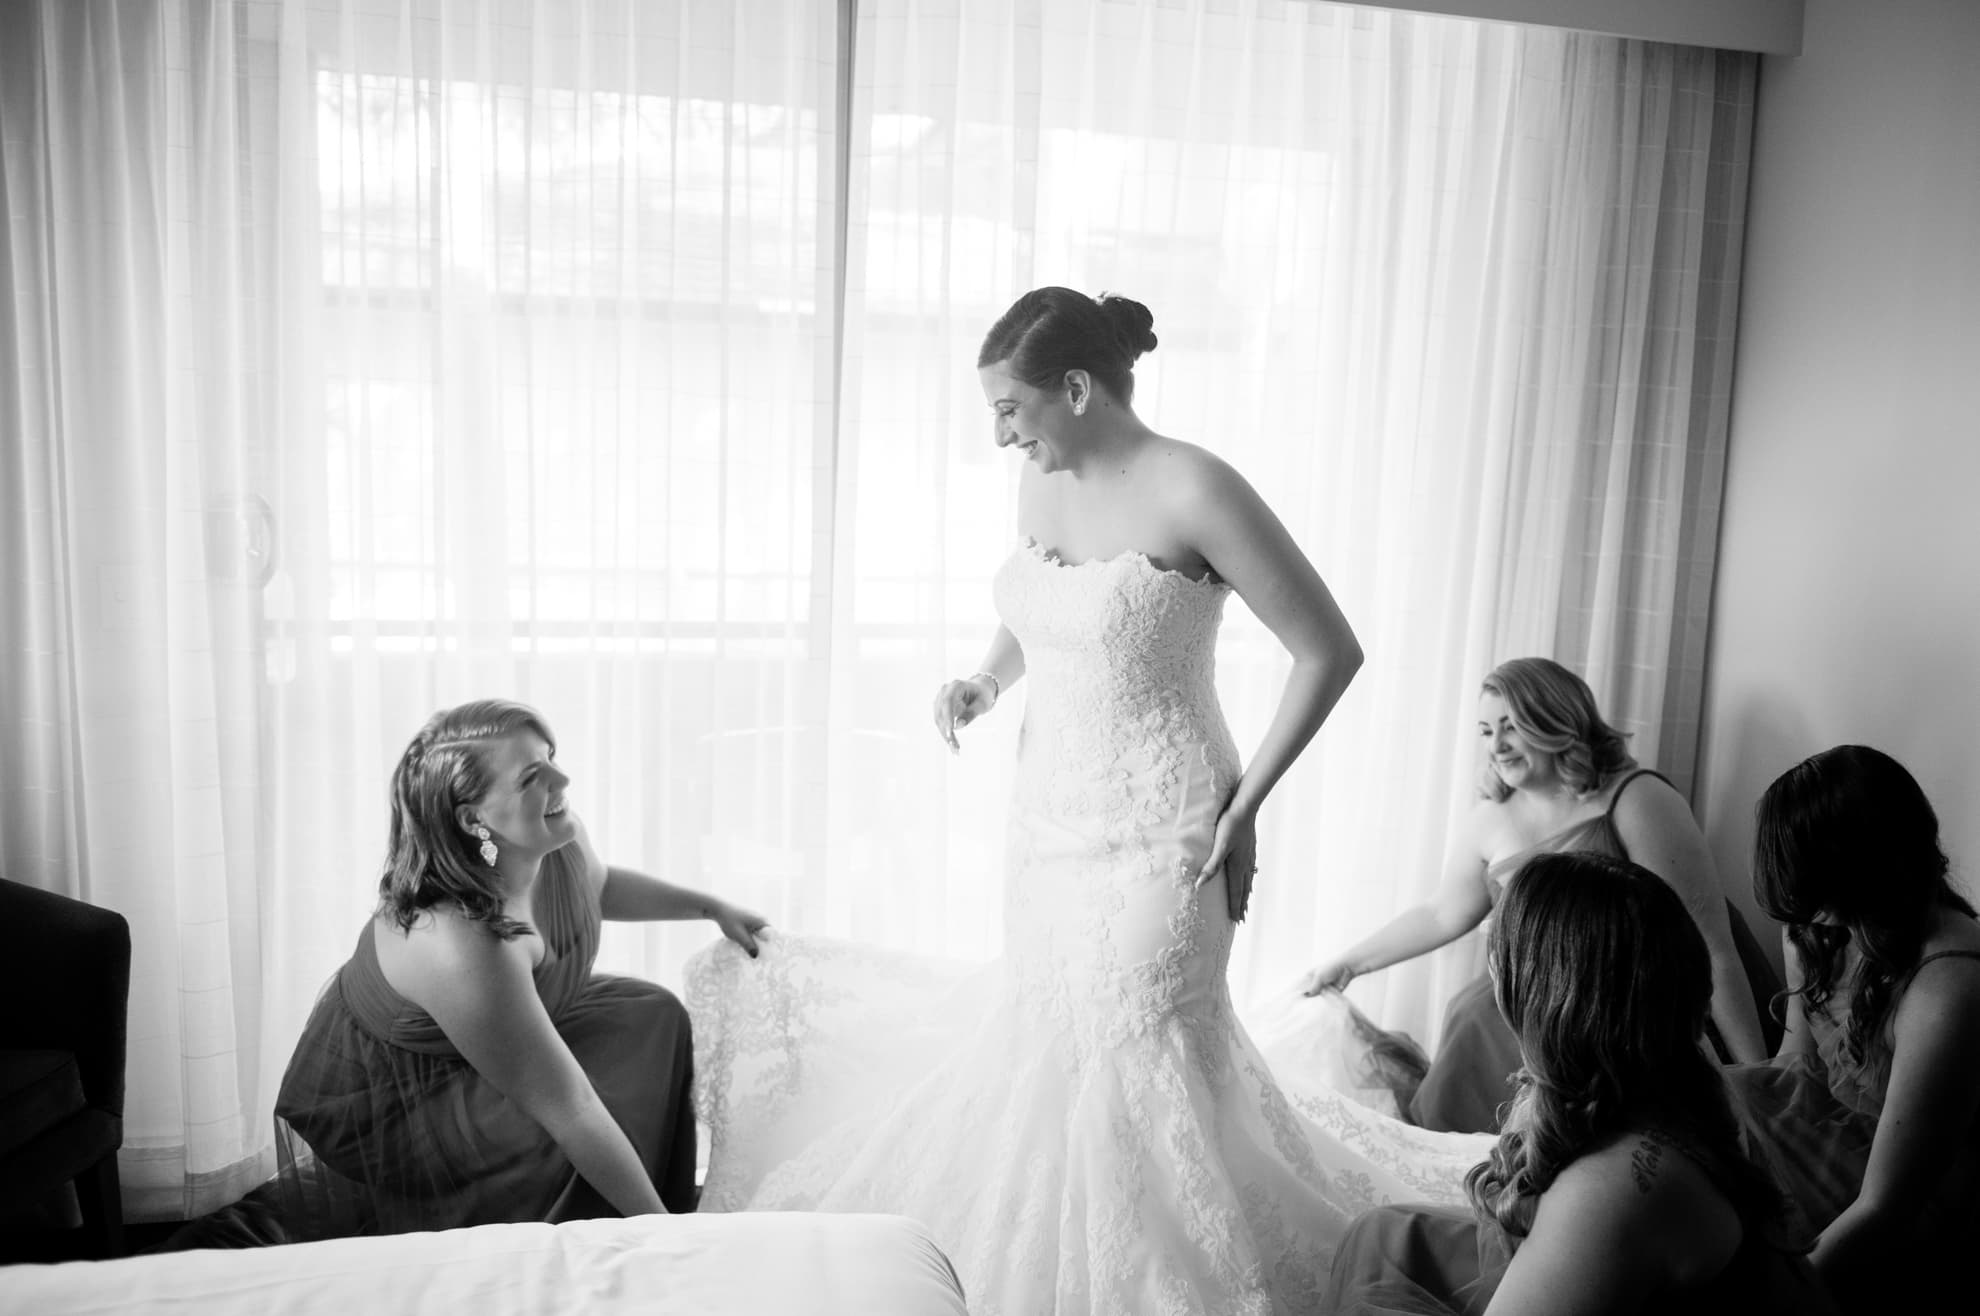 bridesmaids-help-the-bride-into-her-dress-bride-looks-at-them-smiling